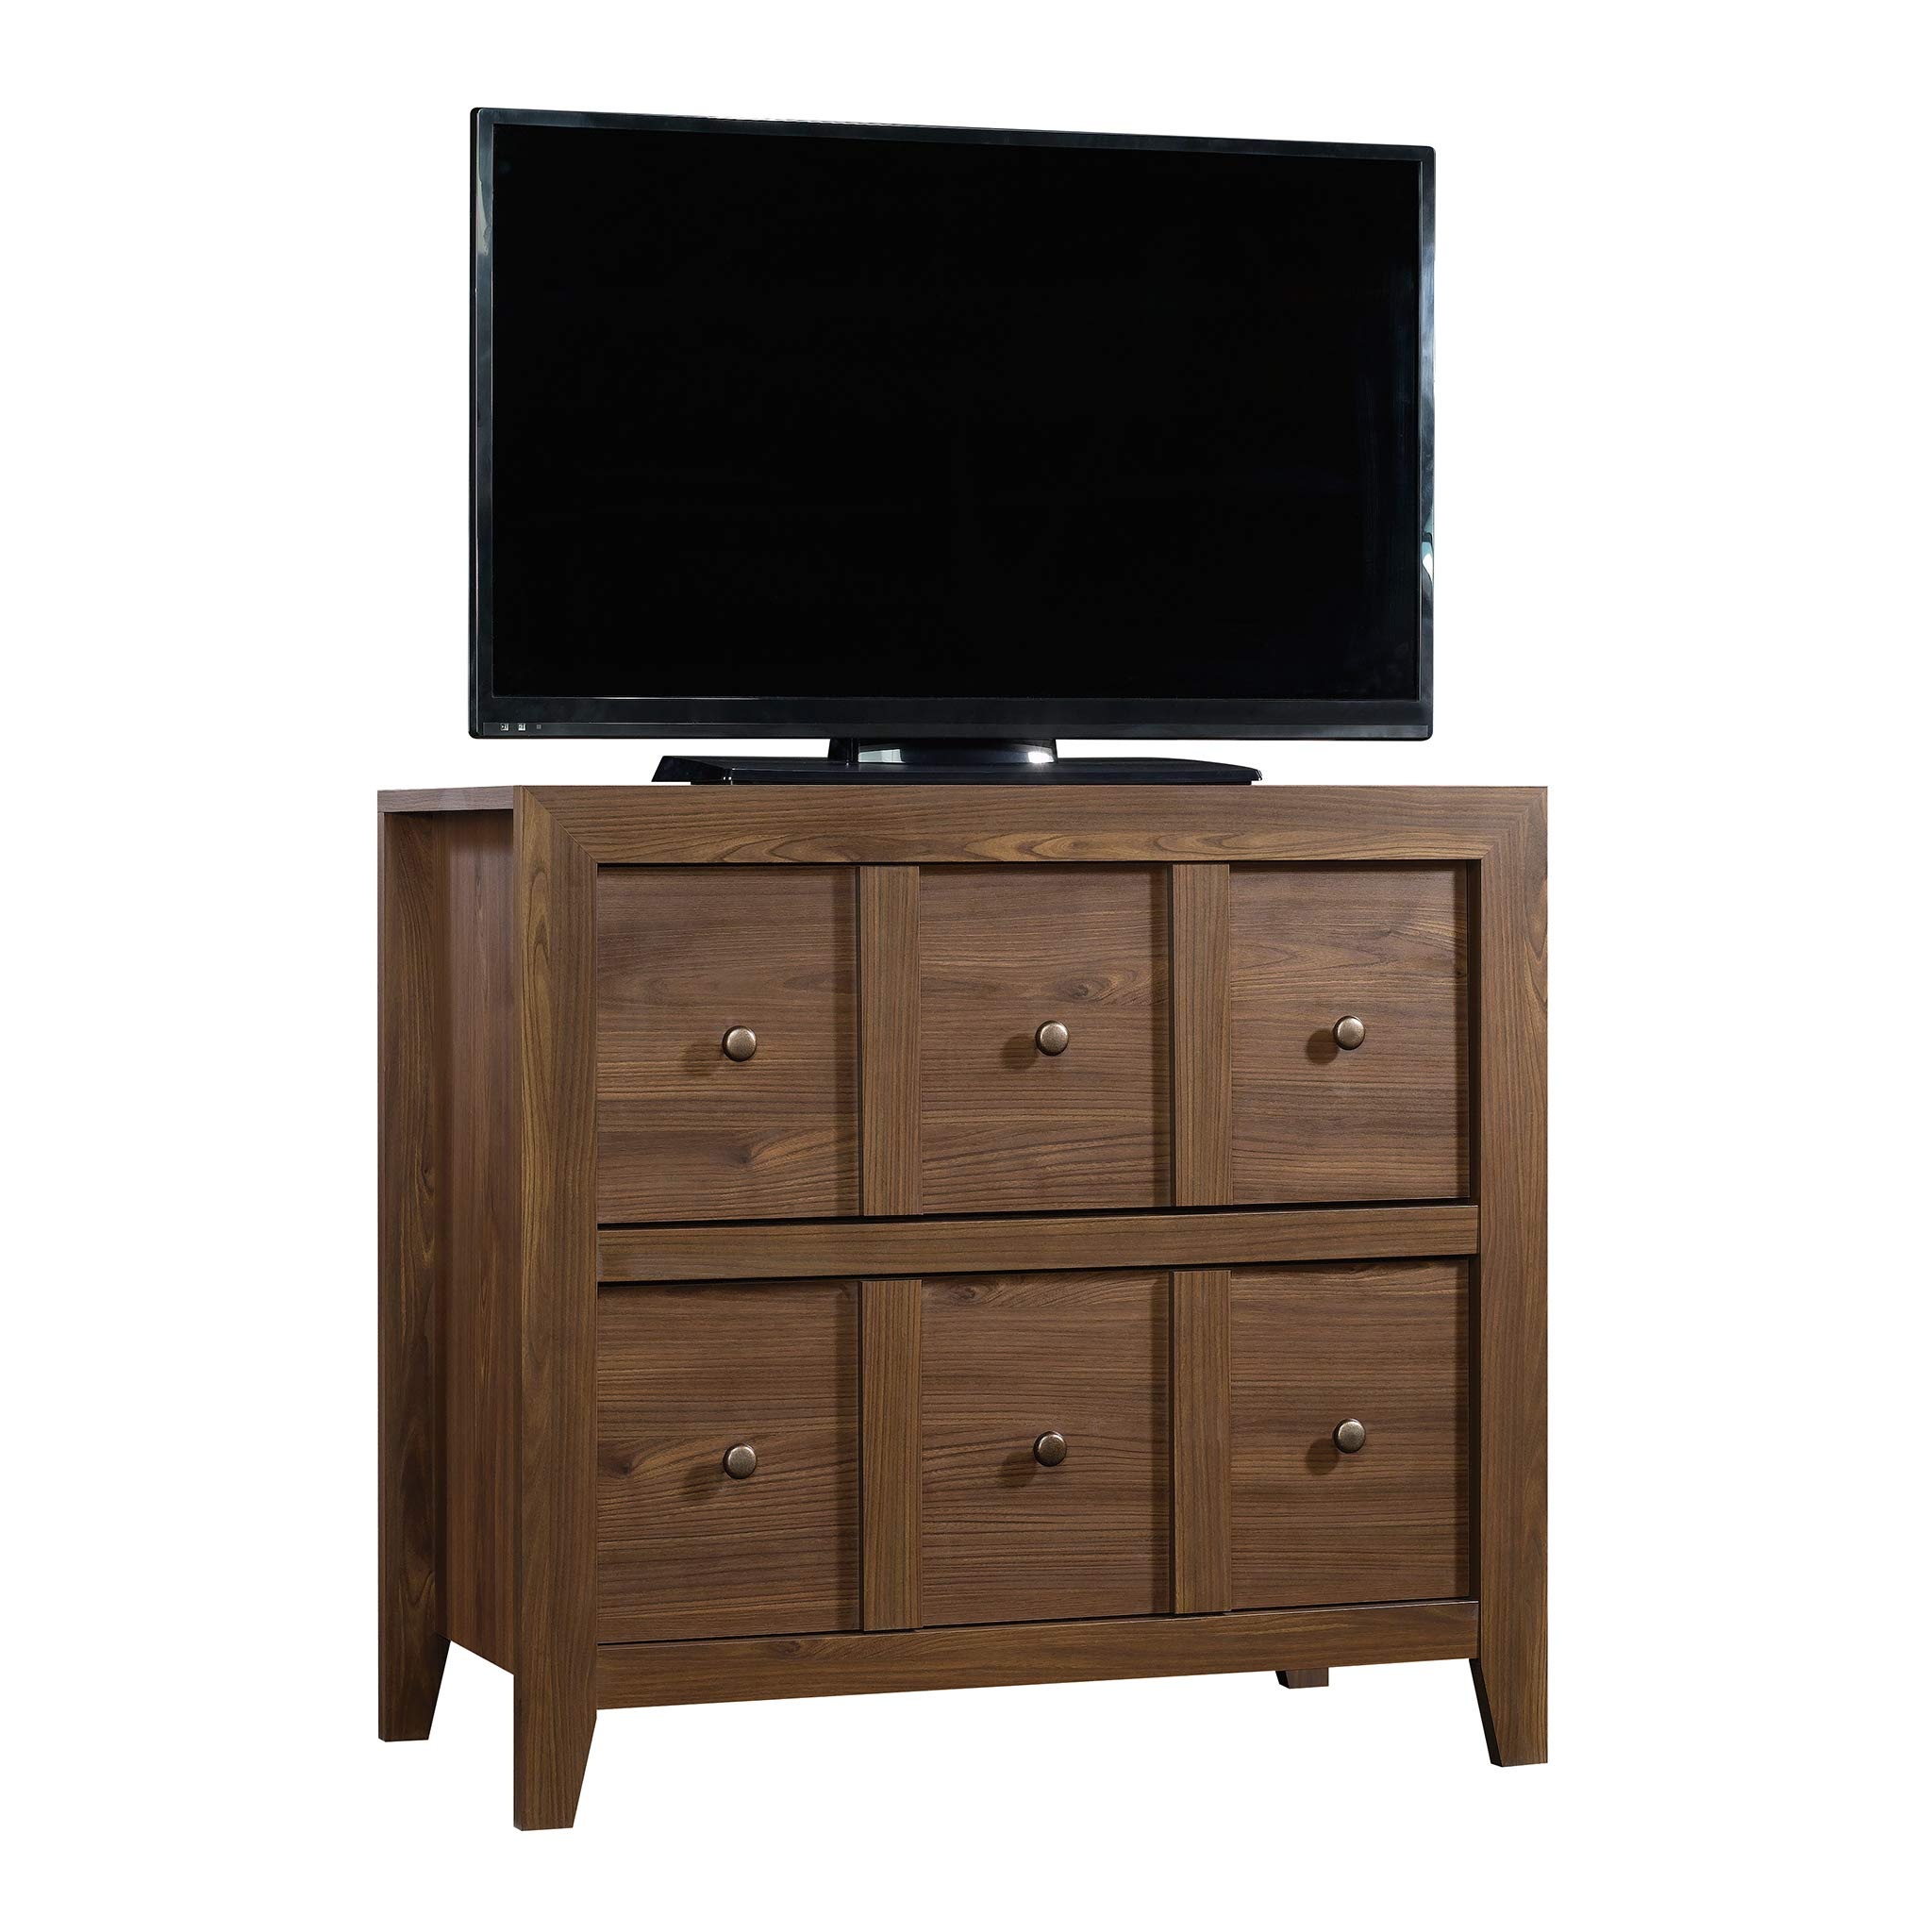 Sauder 420571 Dakota Pass Console with File, For TVs up to 42'', Rum Walnut finish